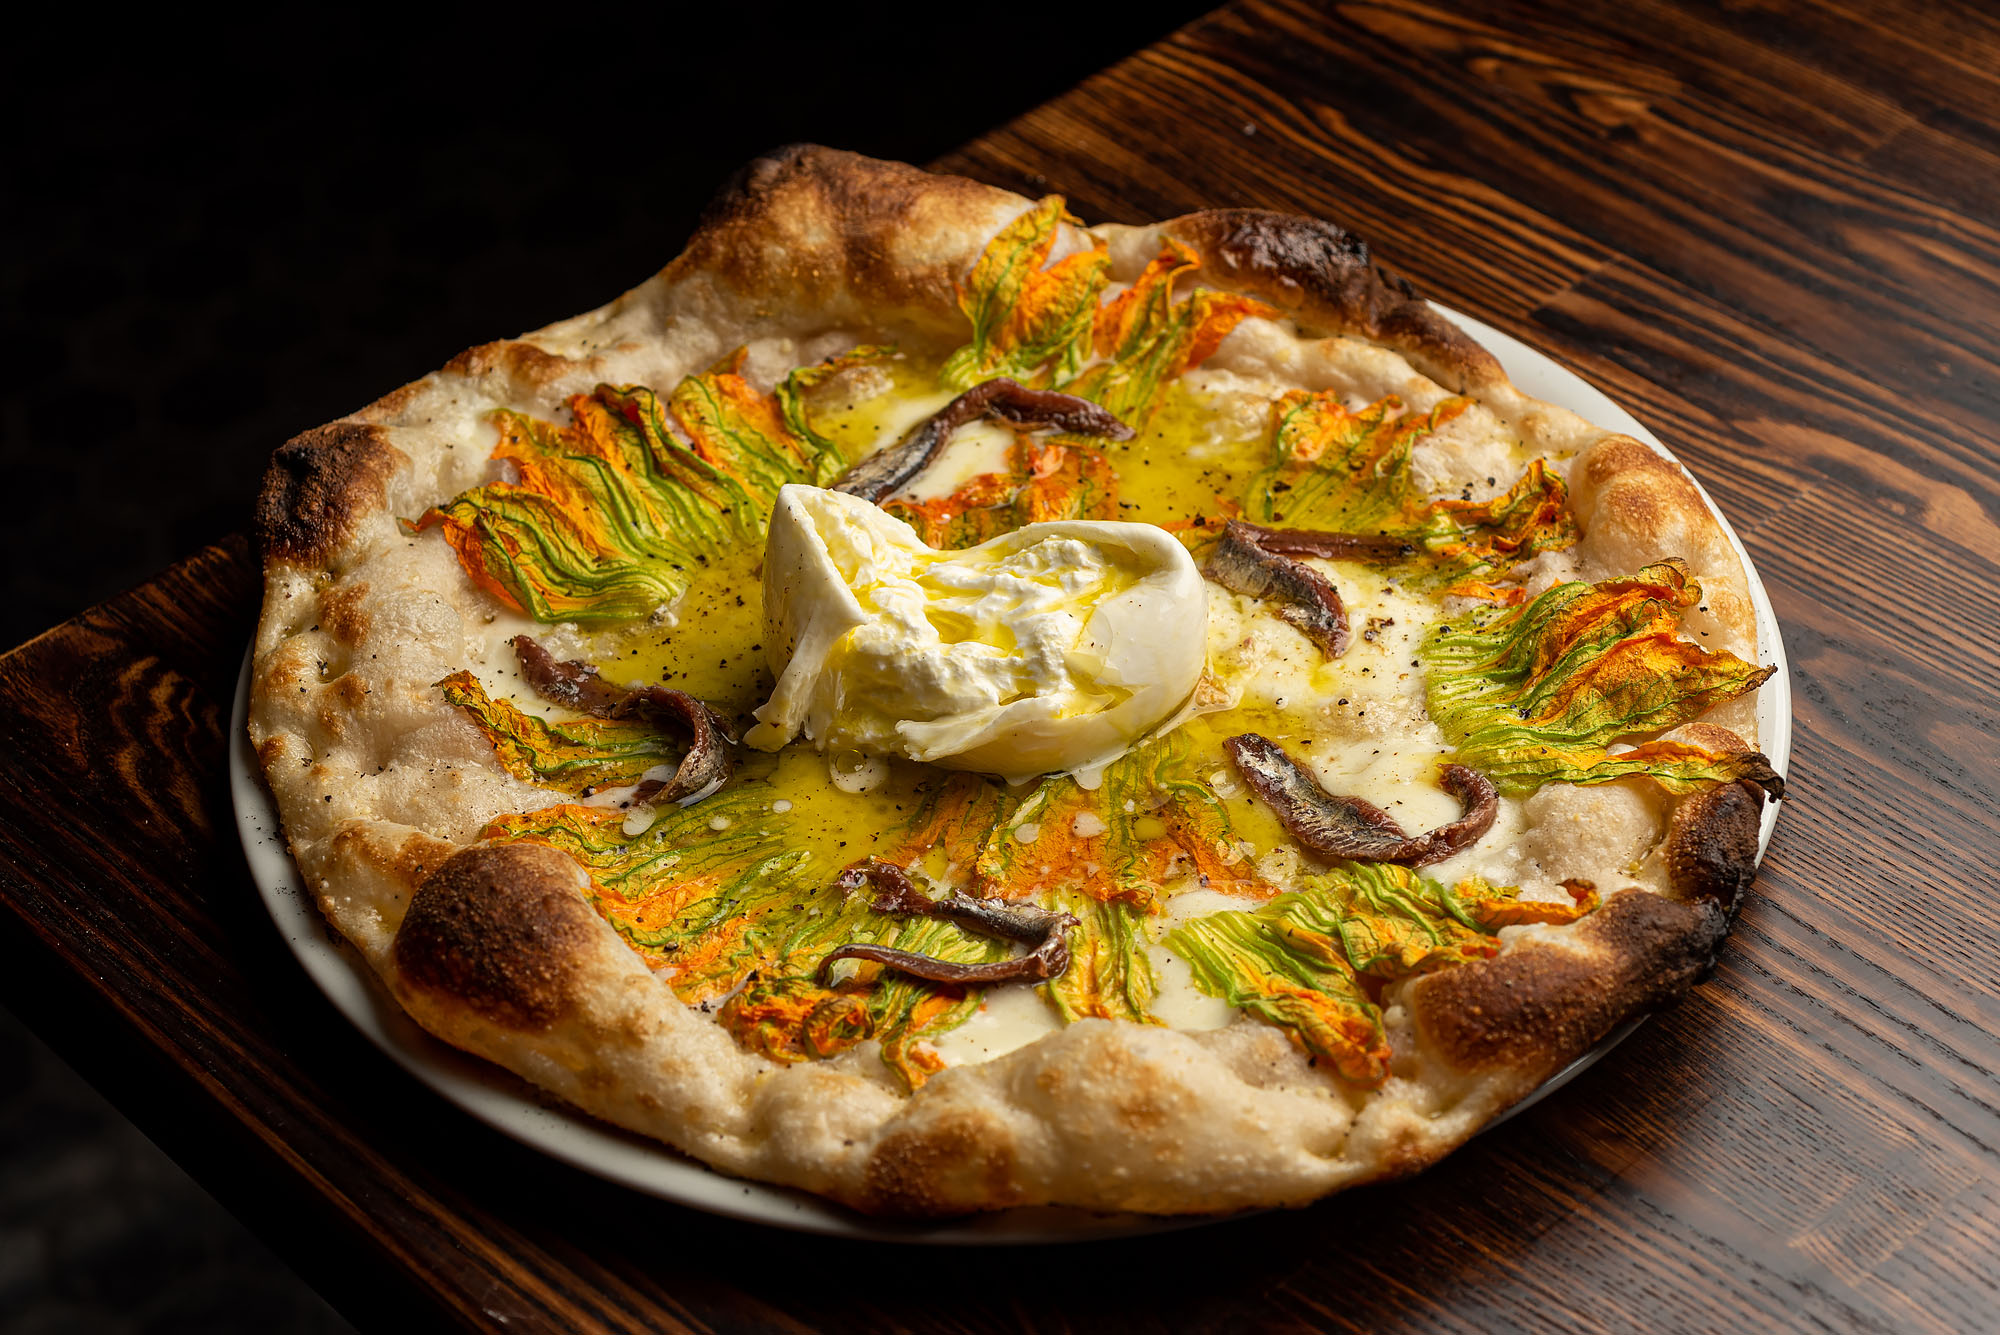 Fiori di zucca roman style pizza with squash blossoms and anchovies at Fingers Crossed in Hollywood.